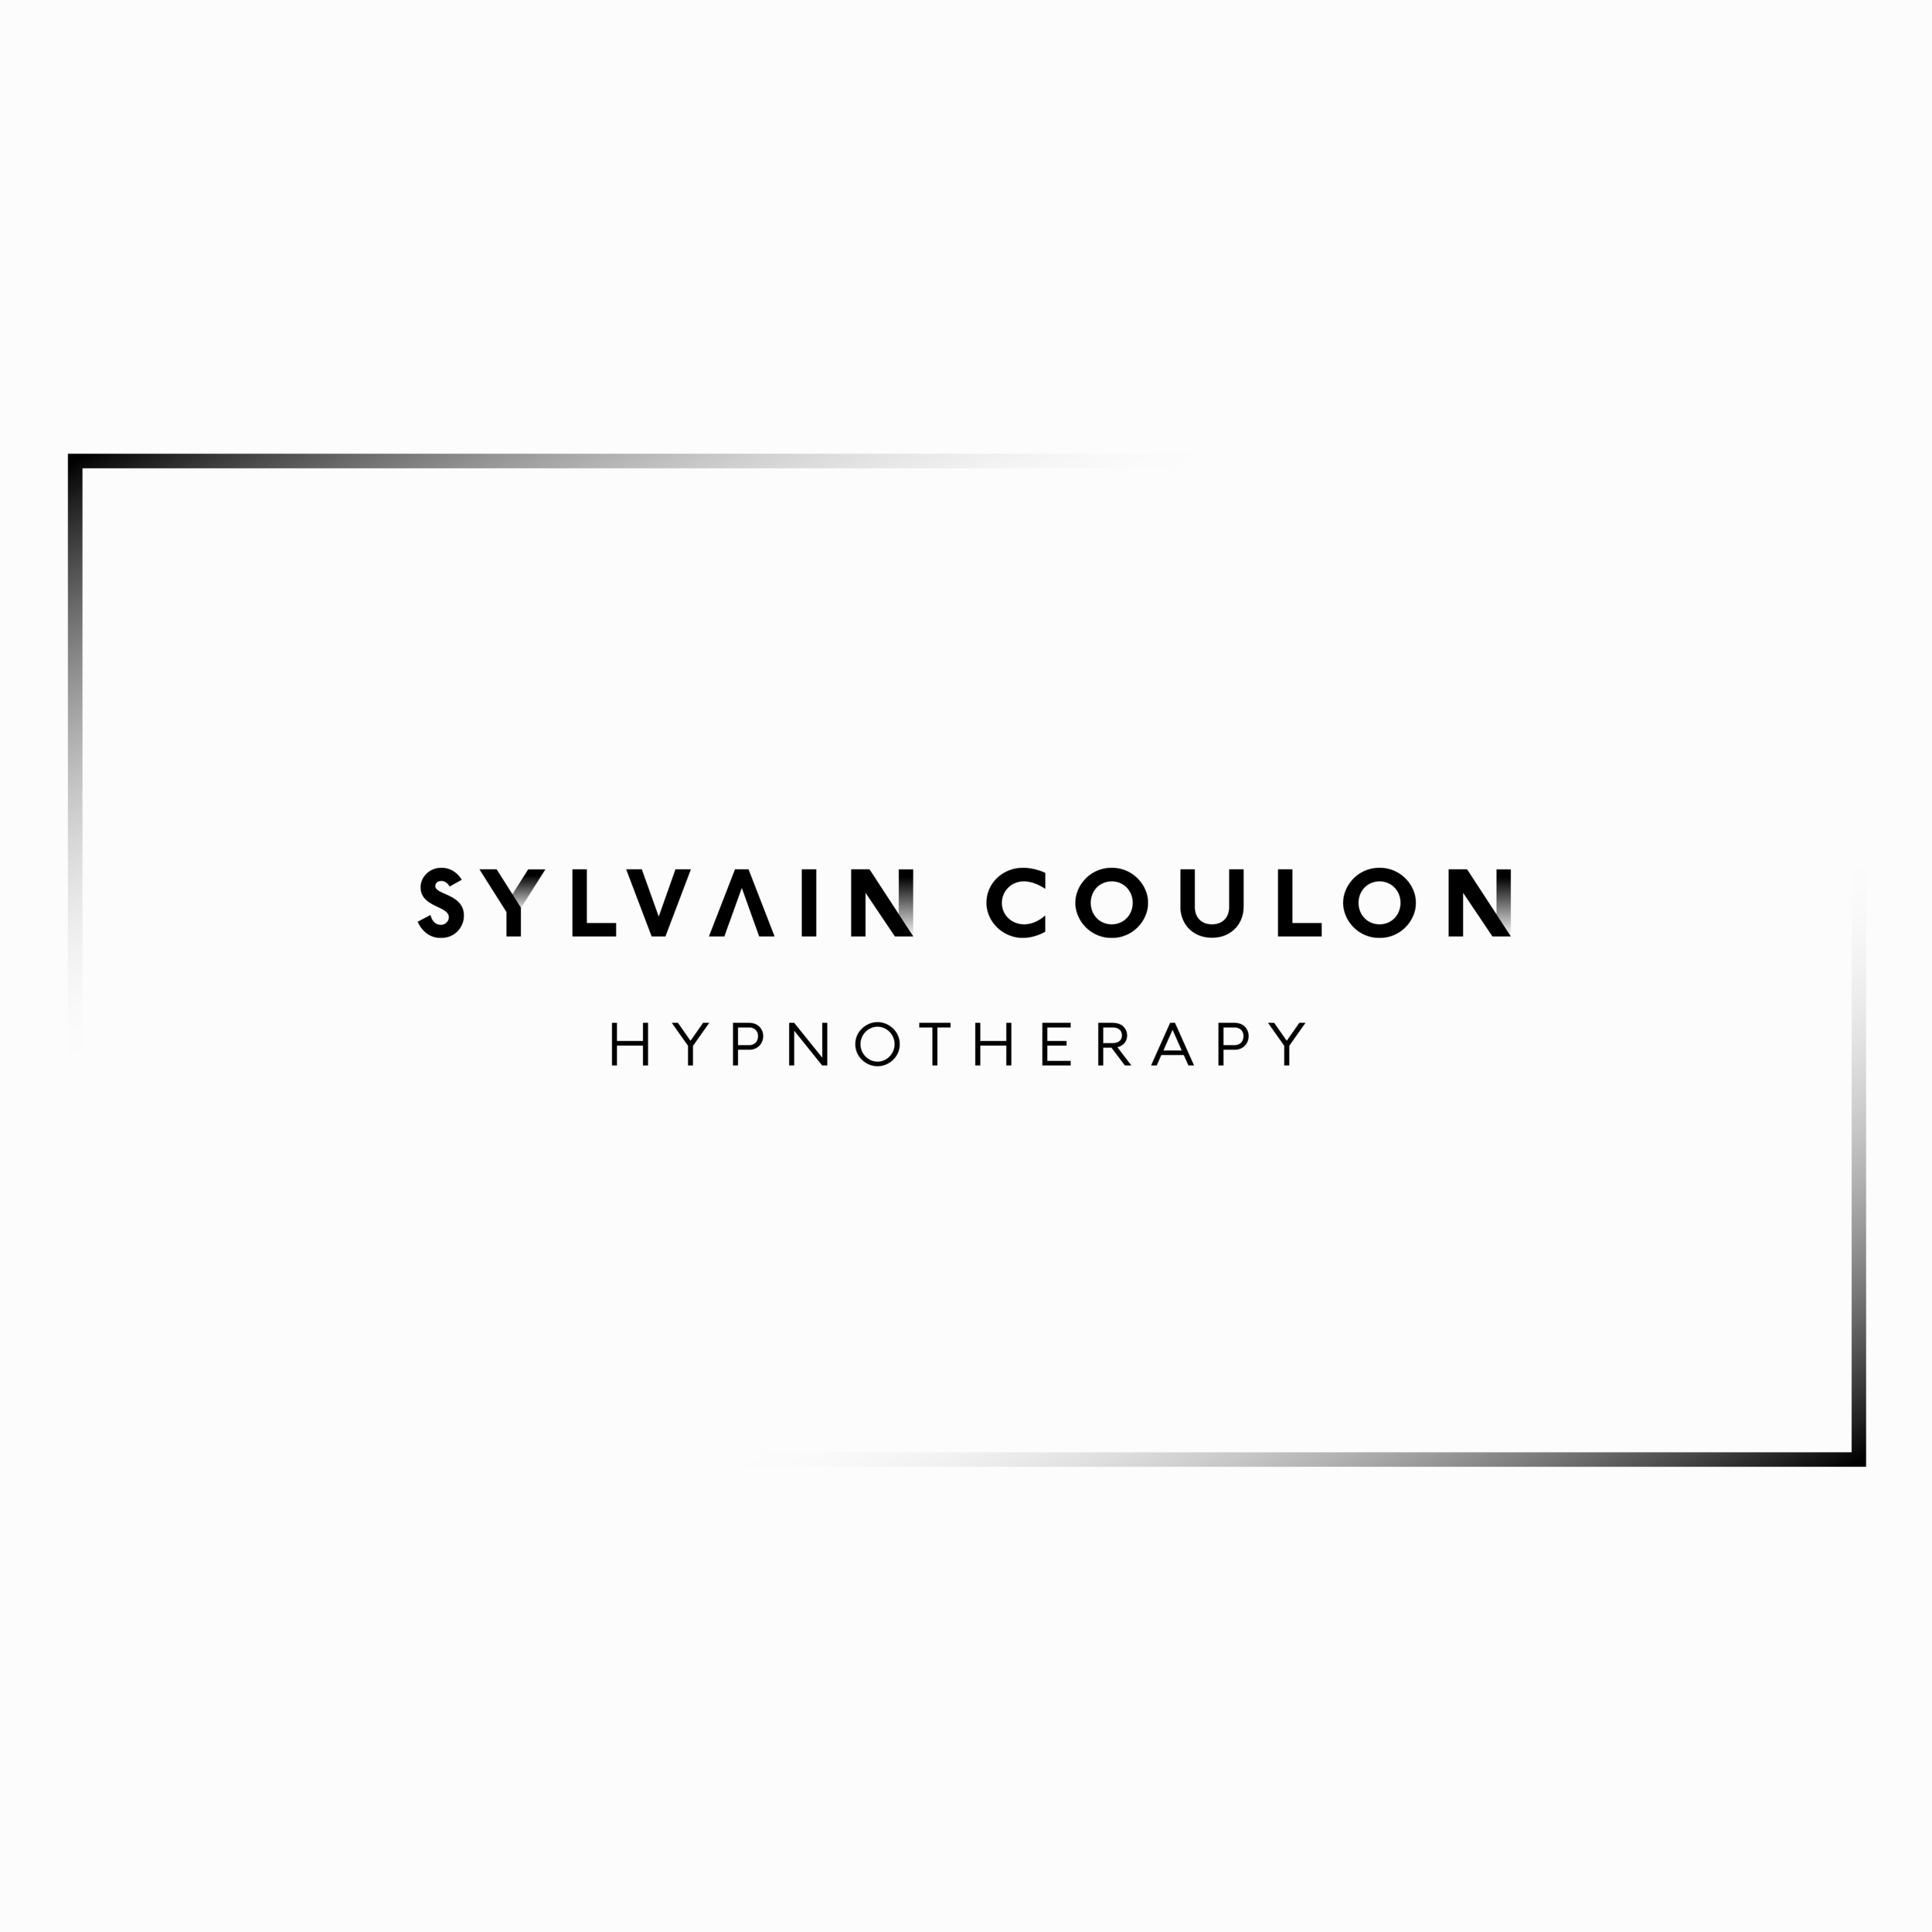 Logo & visual identity for Sylvain Coulon, hypnotherapist. 2016, New York, USA.  View Project